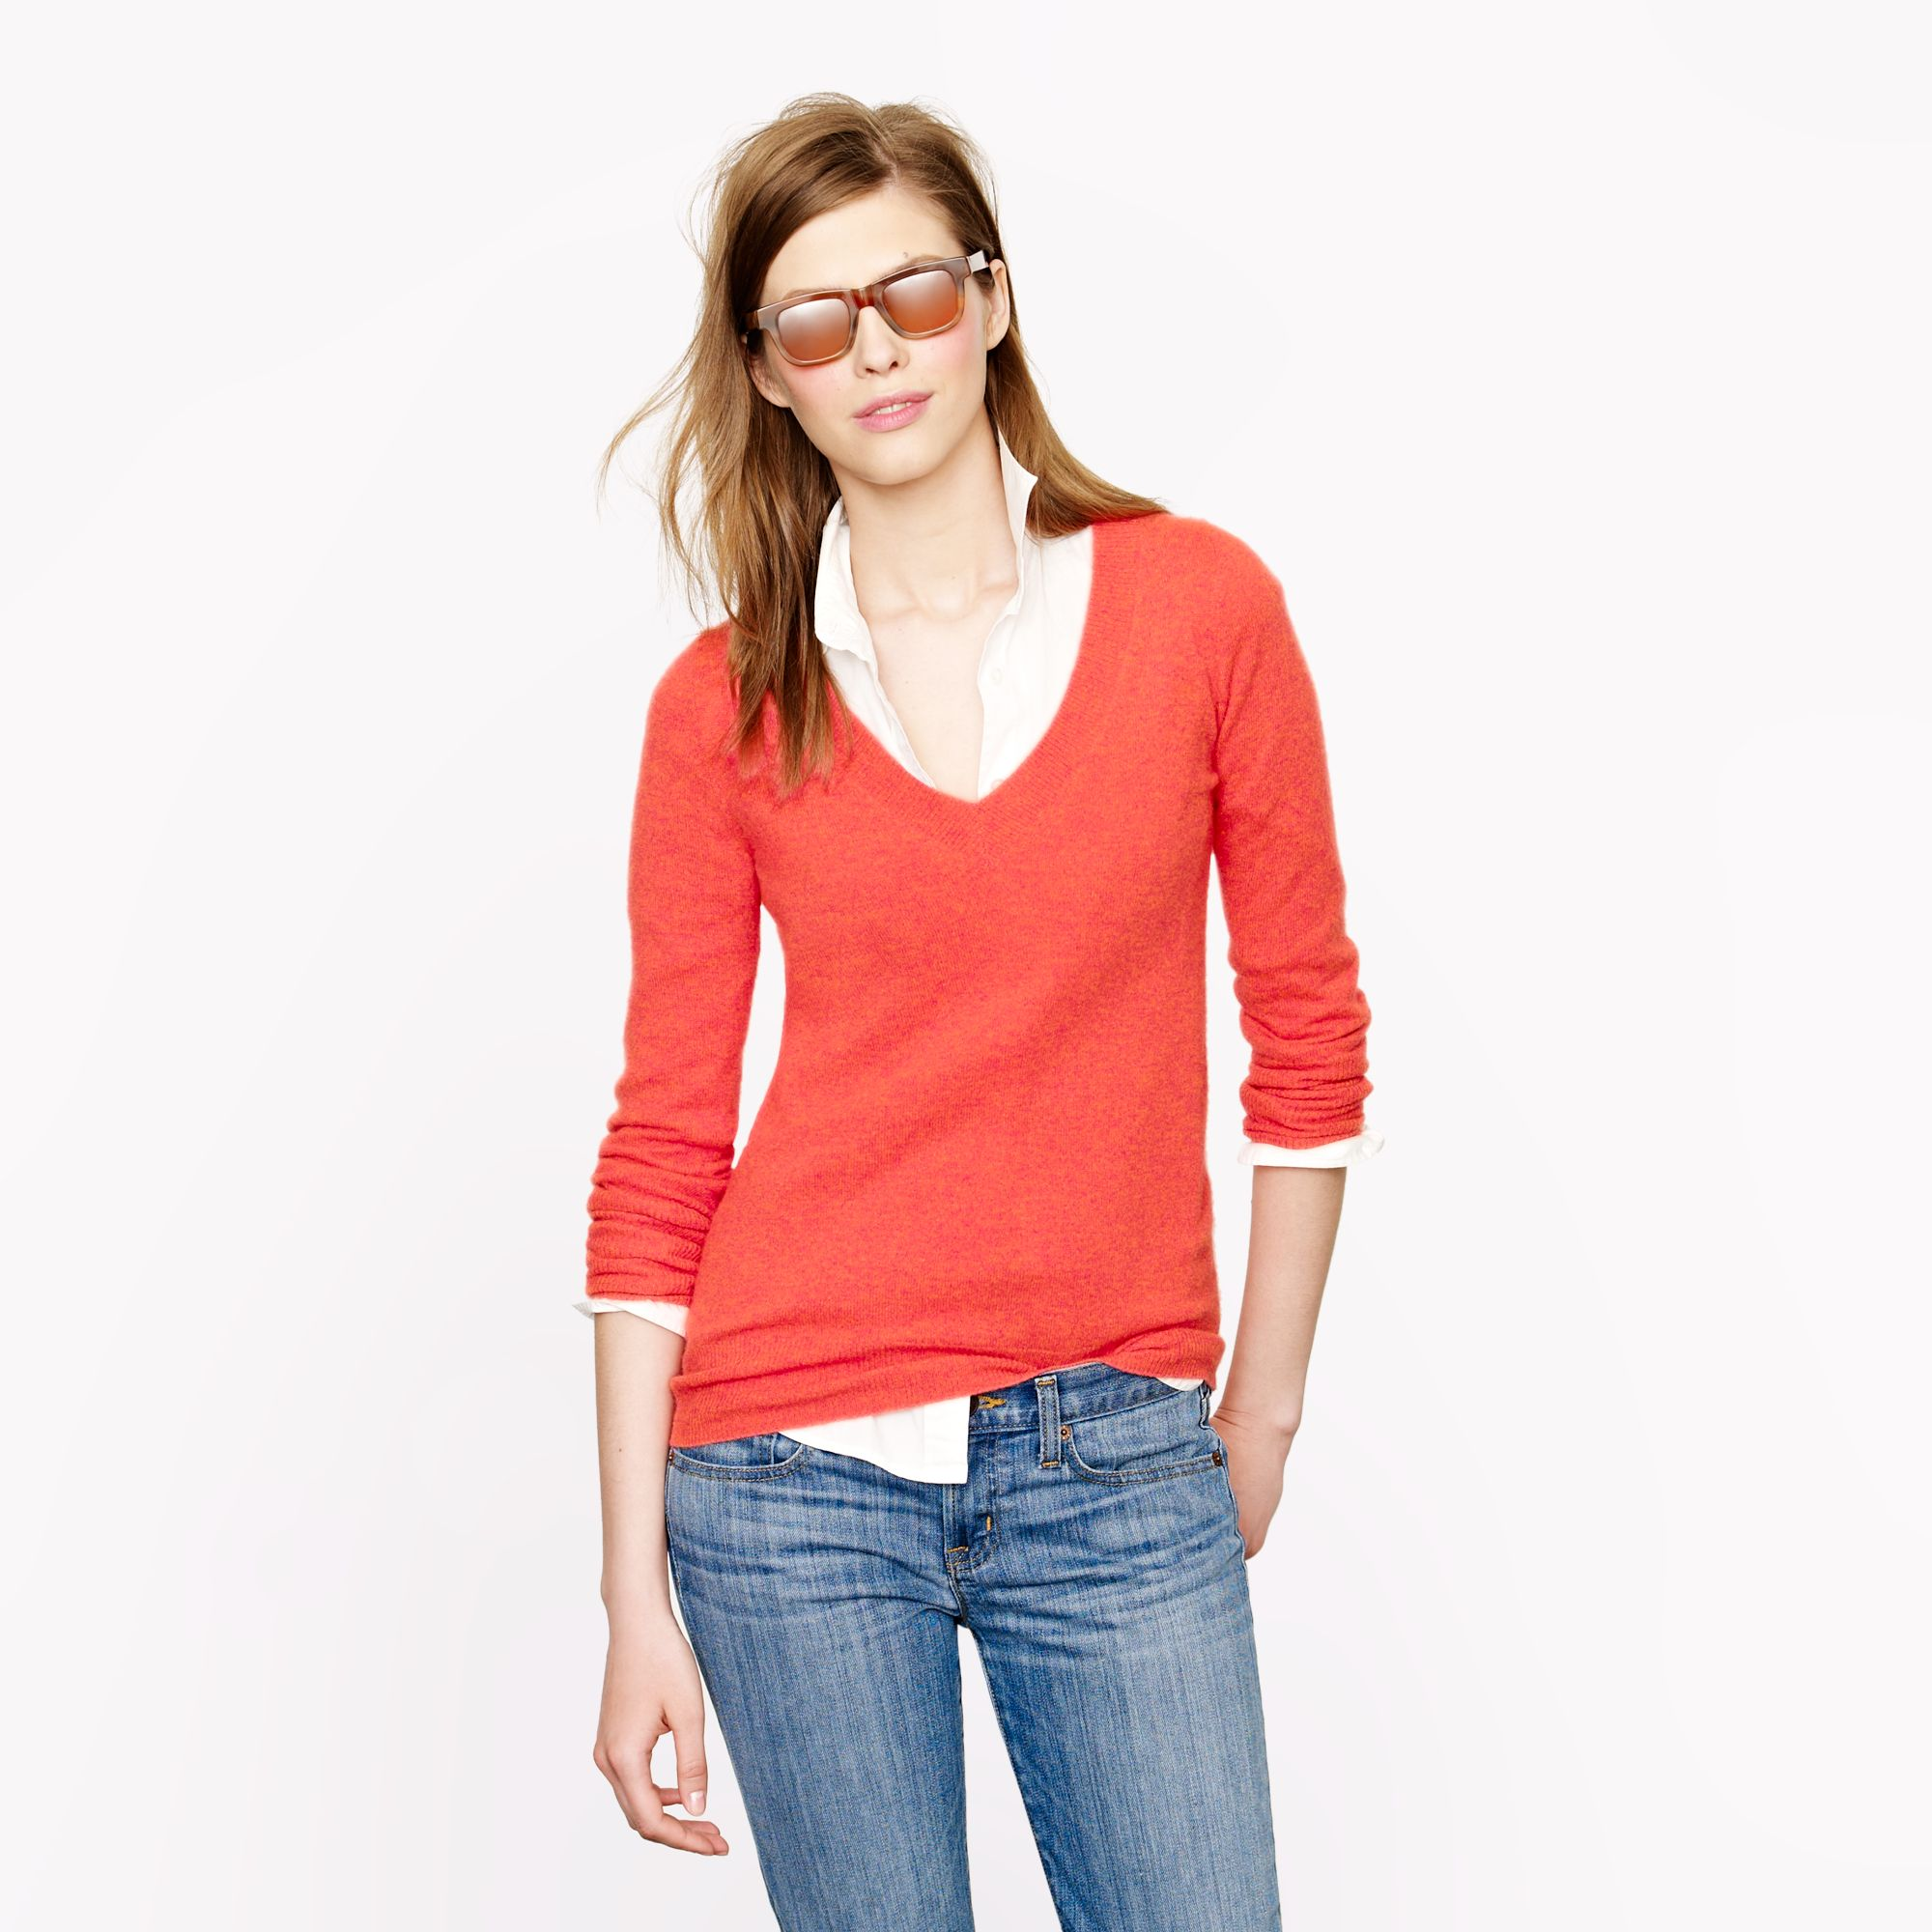 J.crew Collection Cashmere V-neck Sweater in Red | Lyst